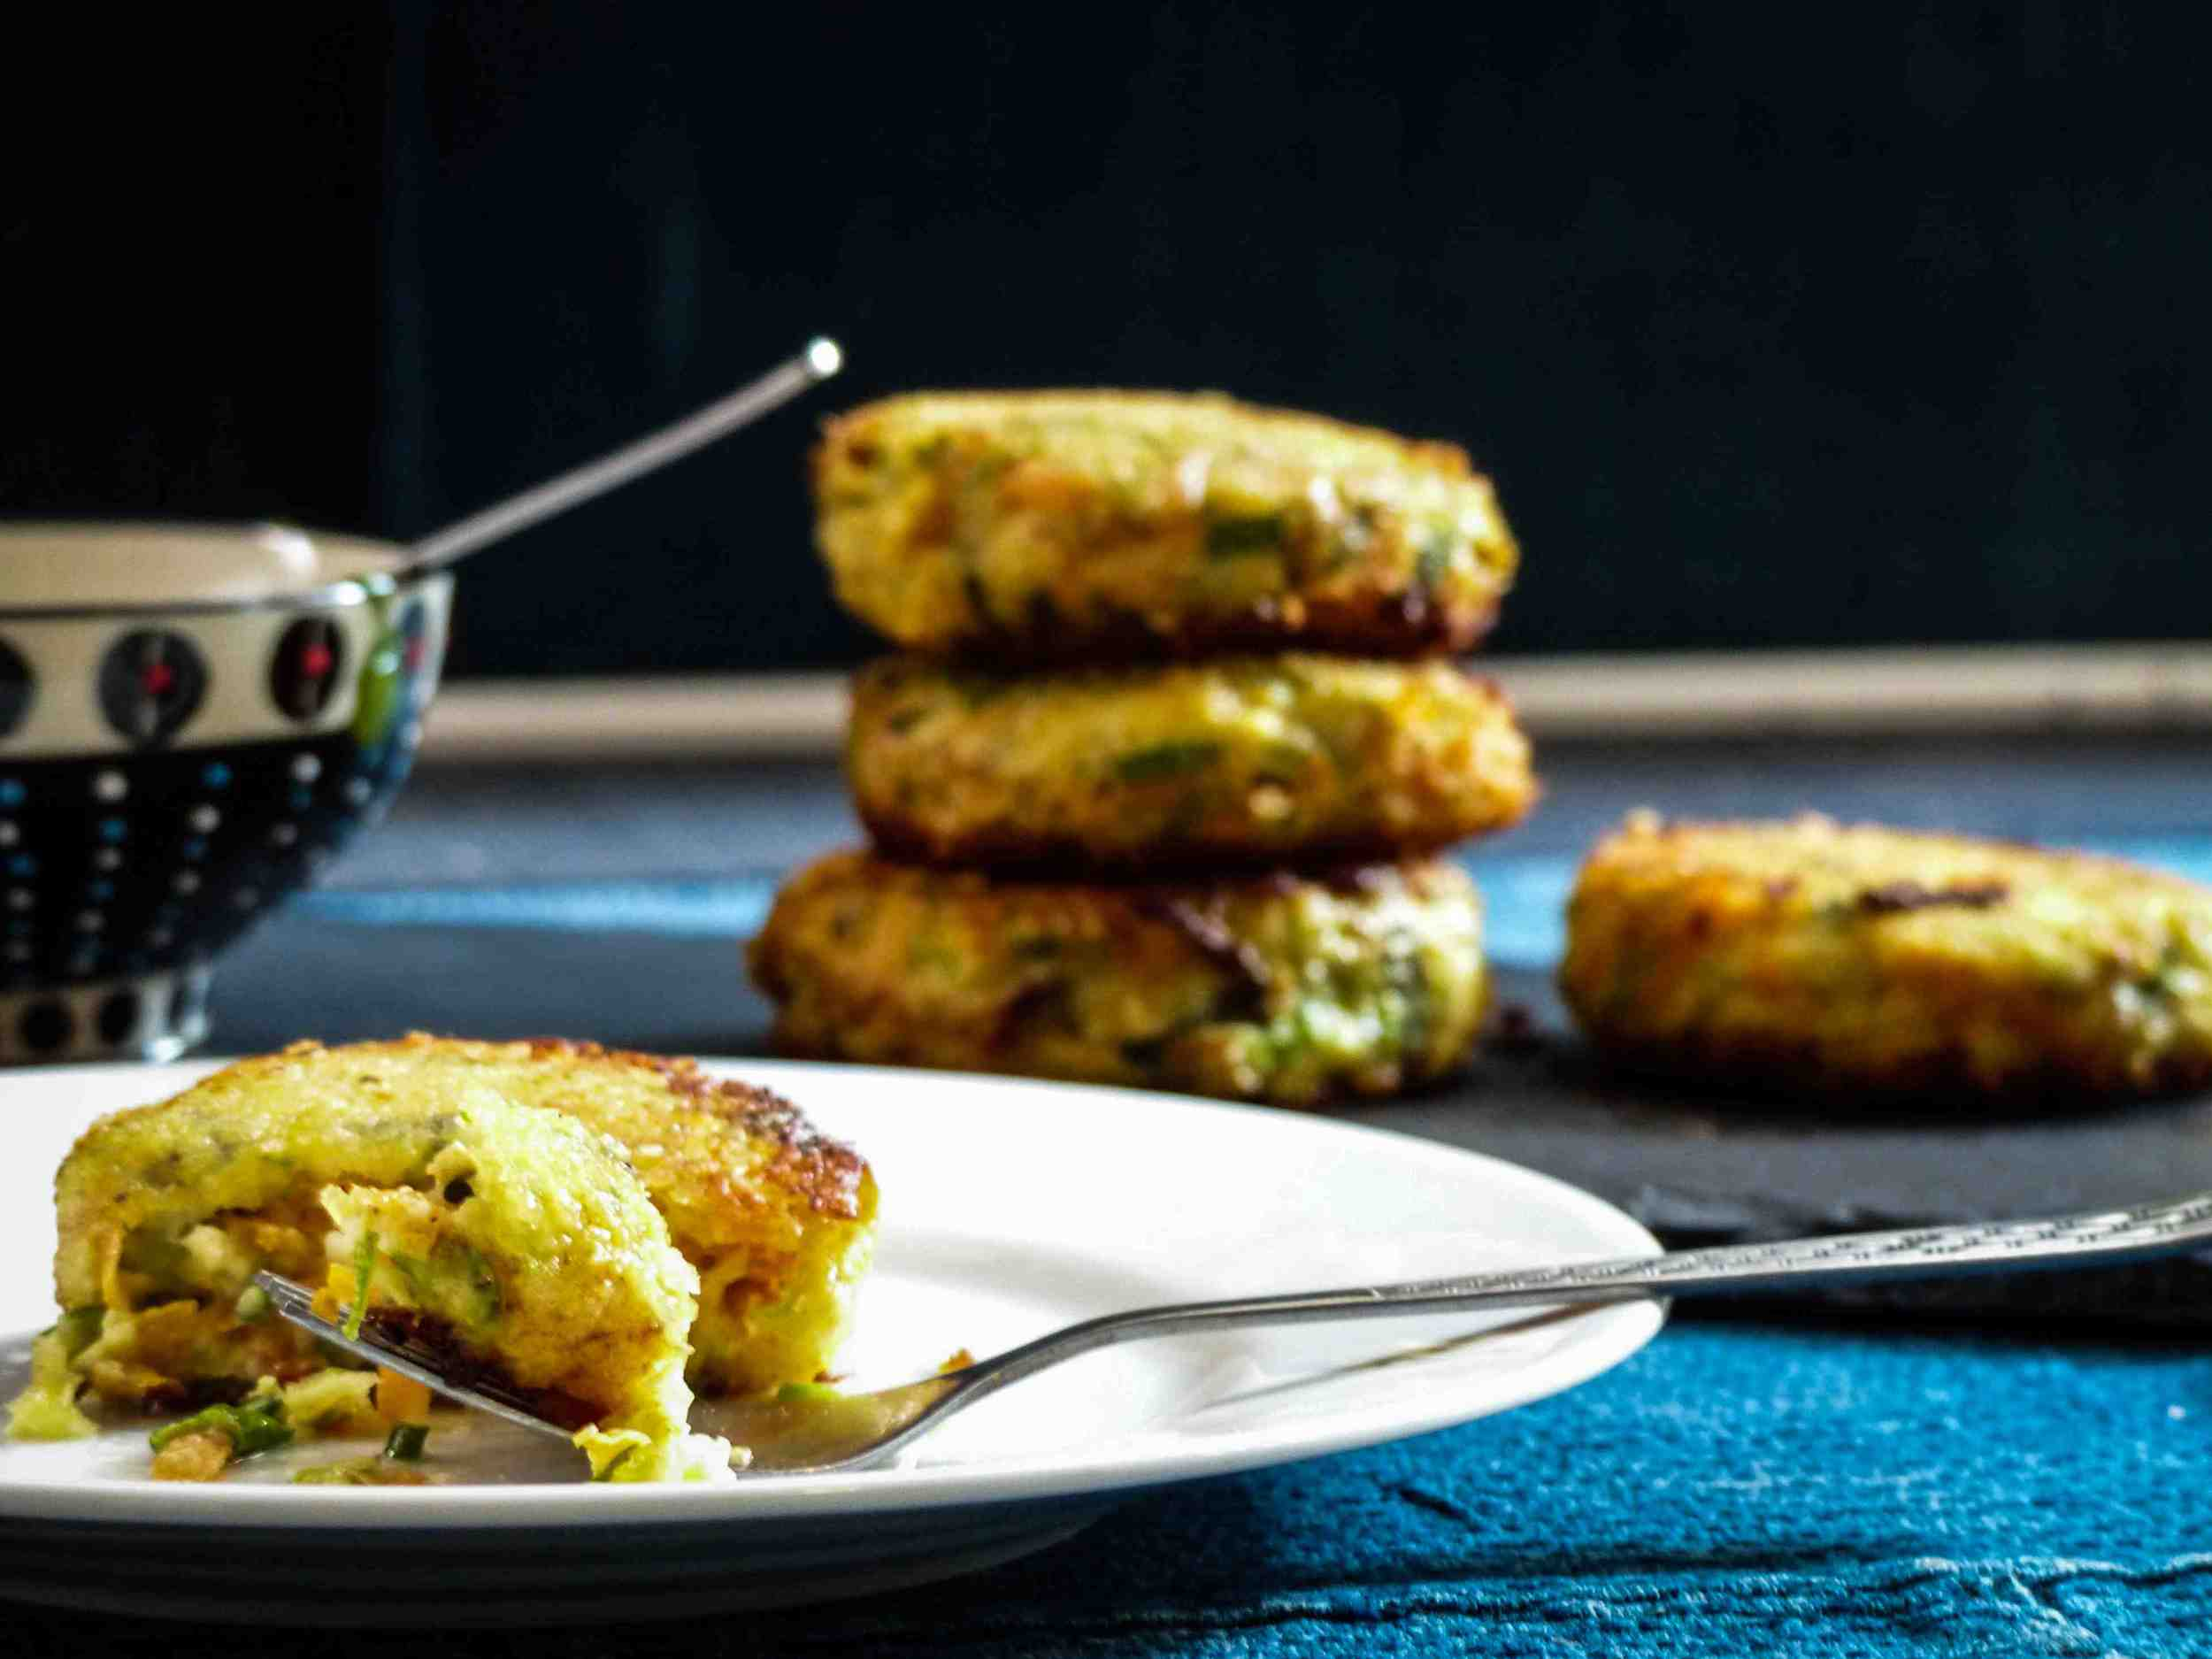 cheesy chinese zucchini and carrot patties with sweet and spicy sauce - enjoy :)